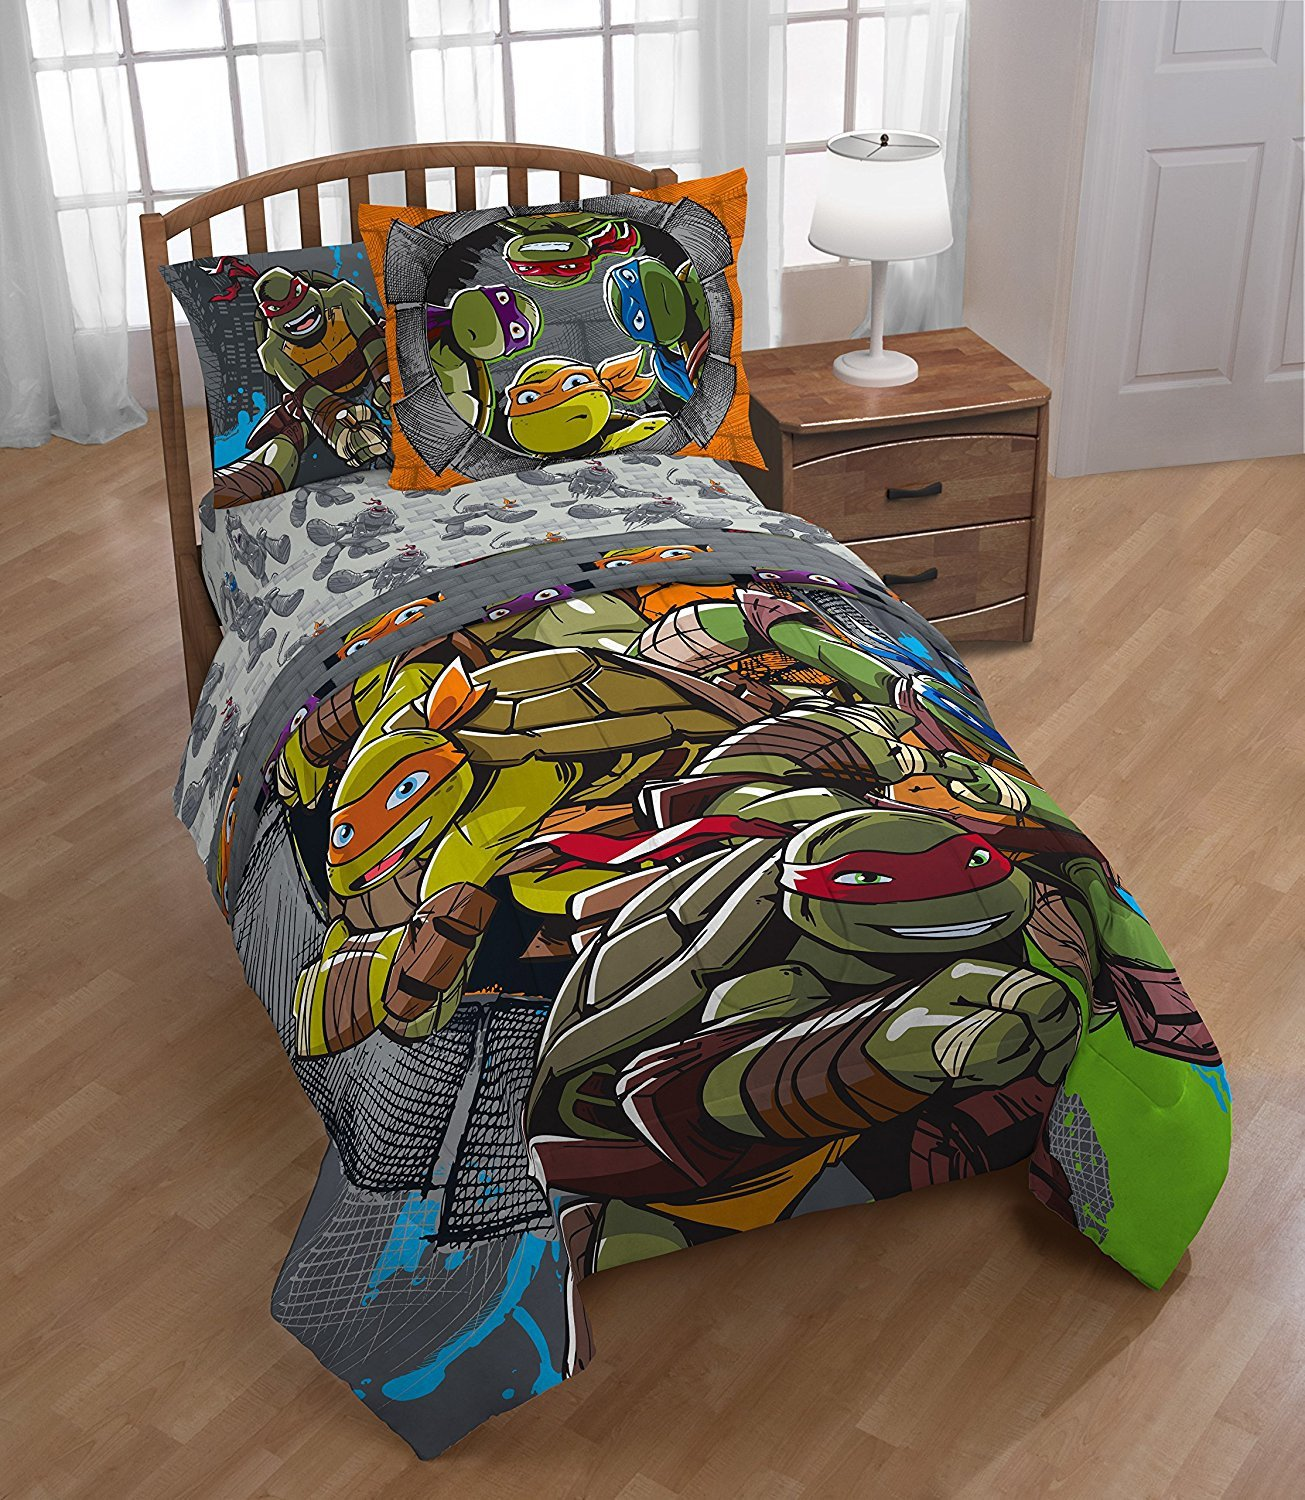 Teenage Mutant Ninja Turtles Bedroom Set Fresh Buy D I D 5 Piece Kids Green Blue Teenage Mutant Ninja